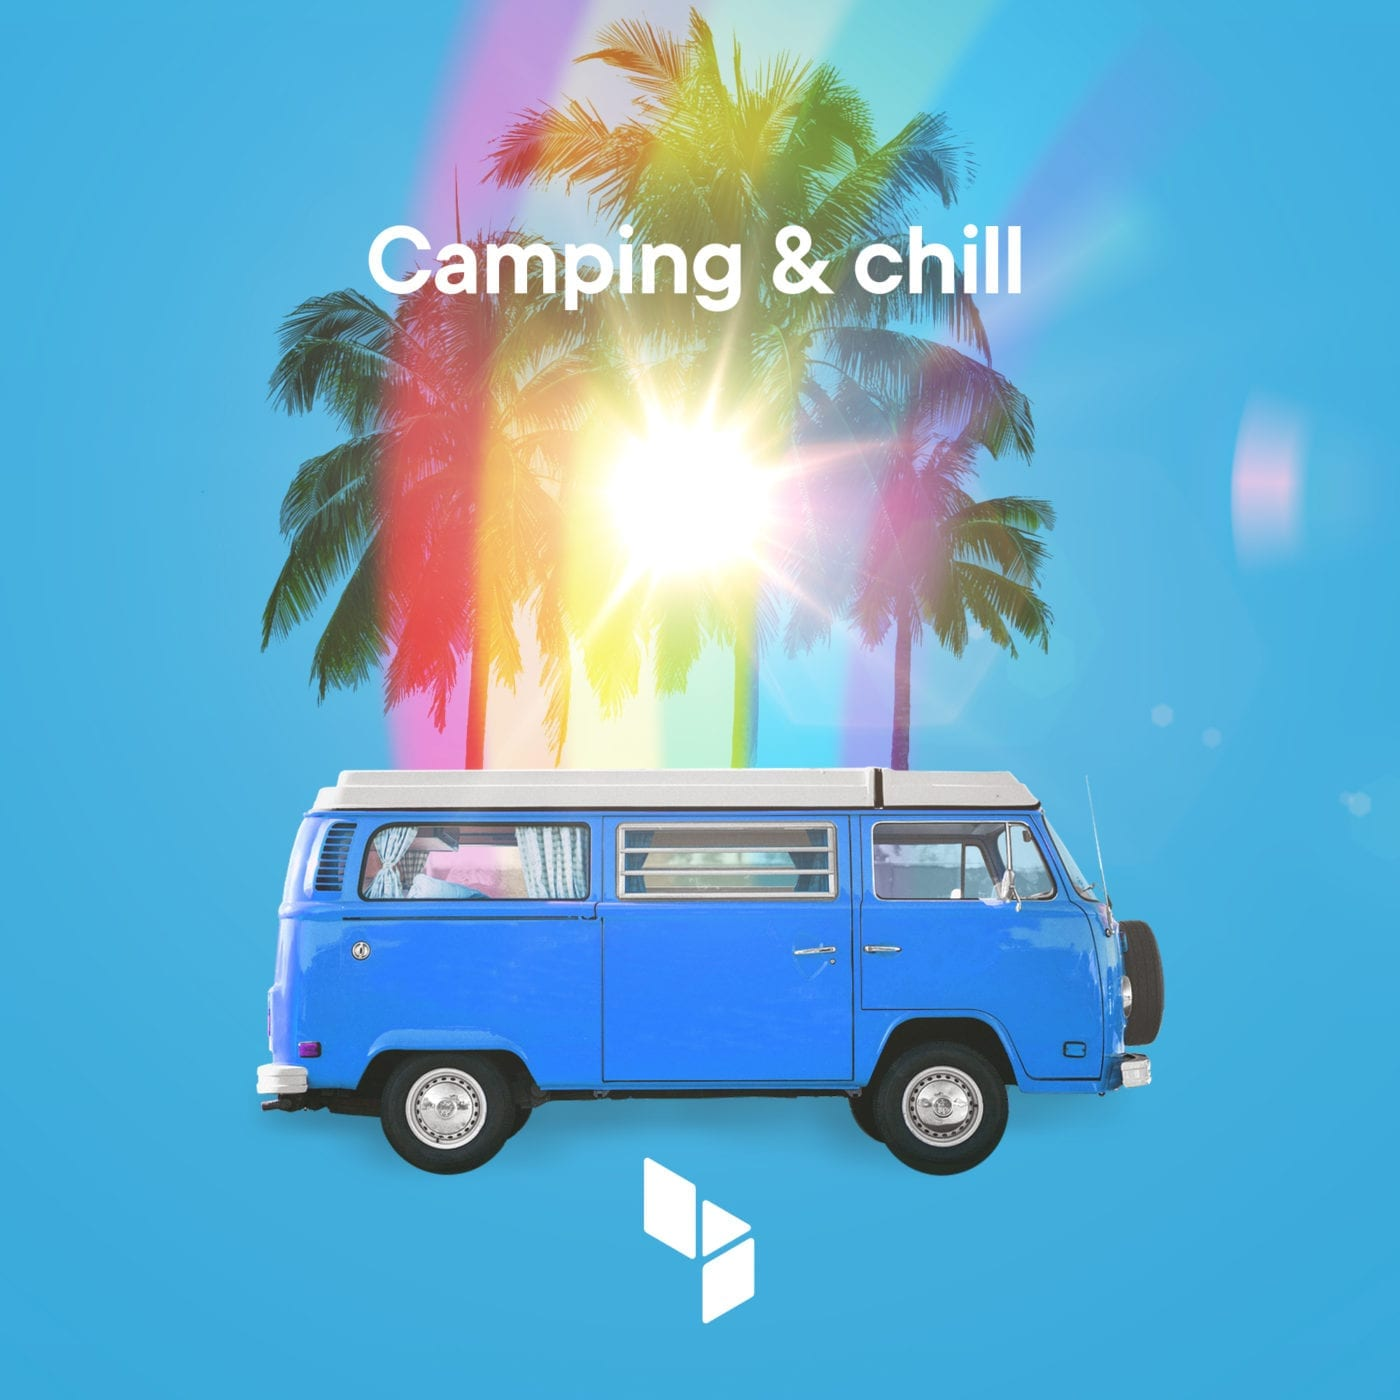 Caravan & chill cover for caravan referral scheme page